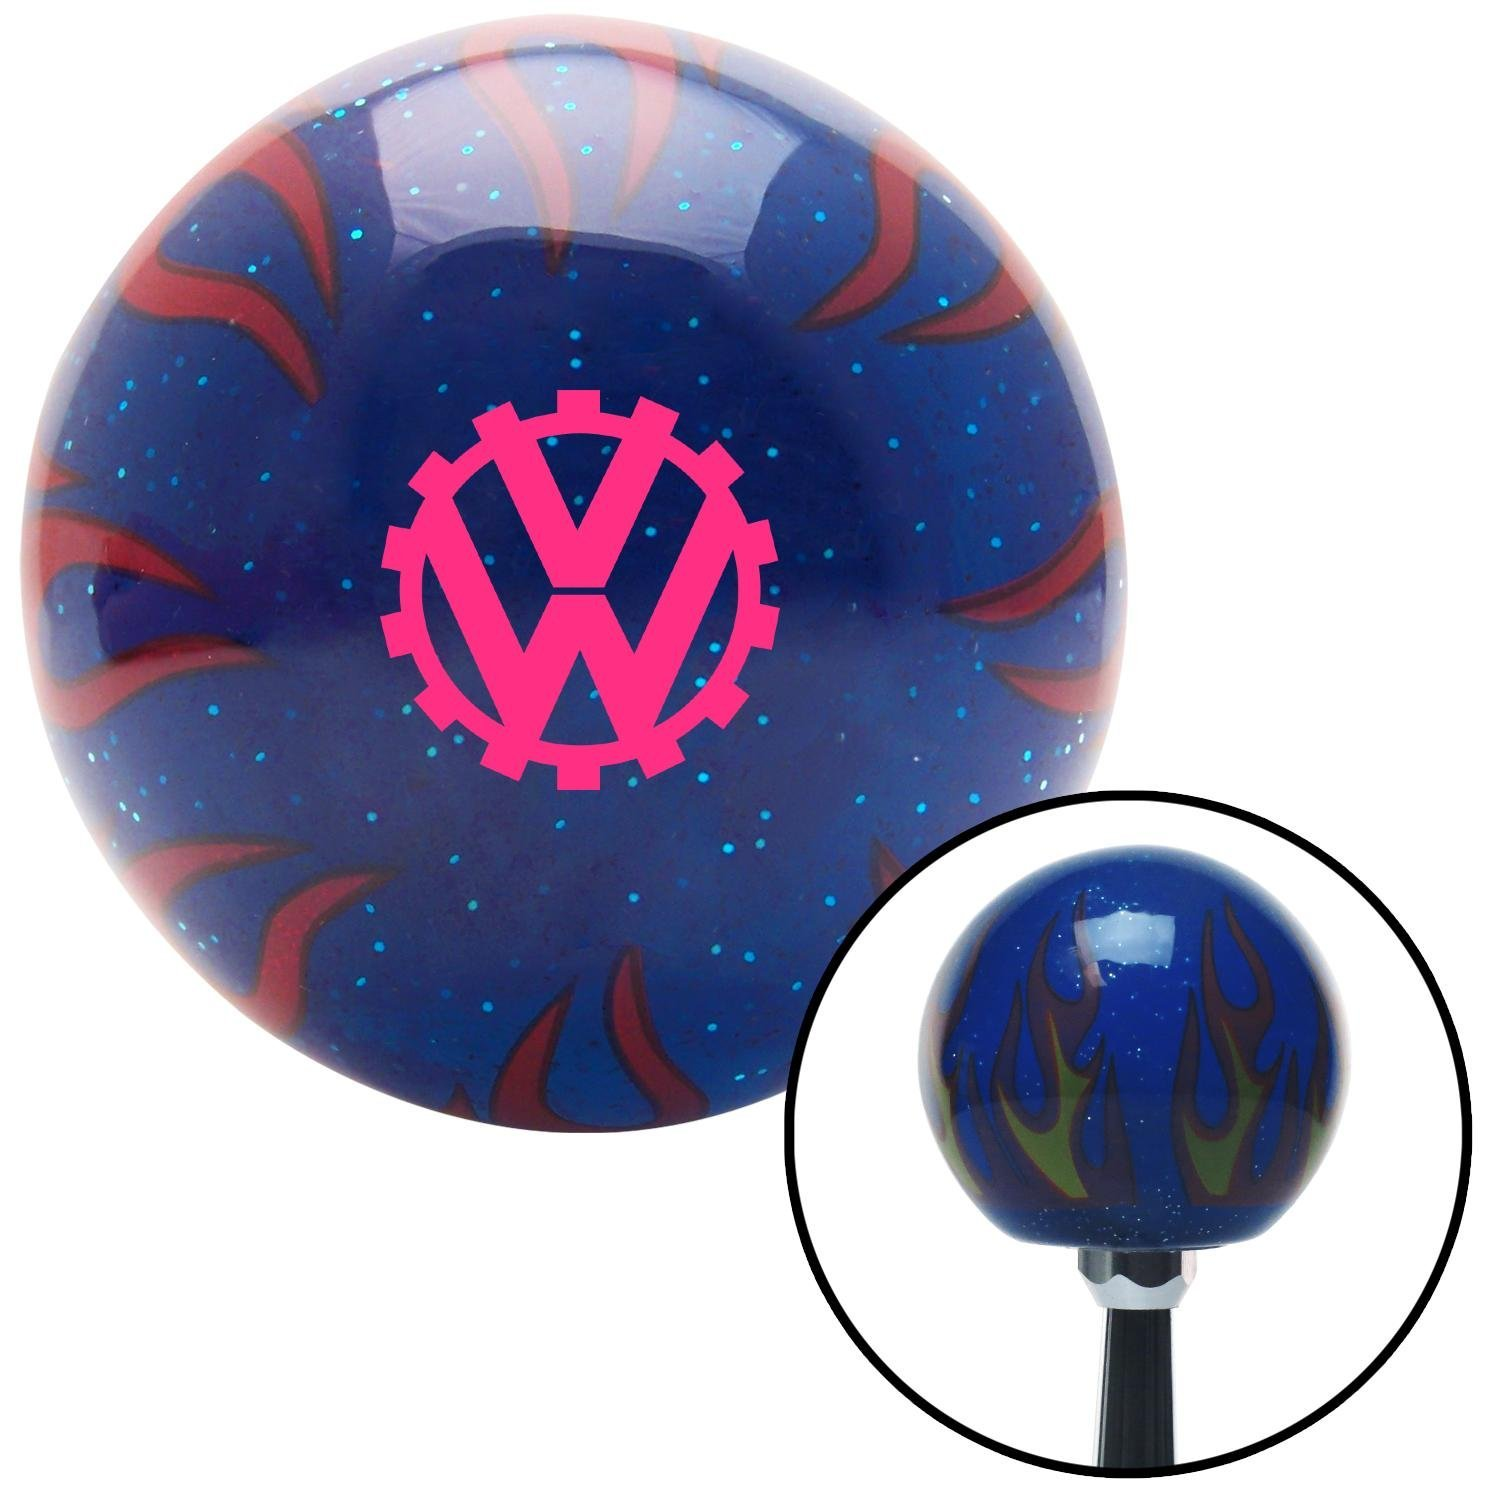 American Shifter 244292 Blue Flame Metal Flake Shift Knob with M16 x 1.5 Insert Pink Horn Trumpet